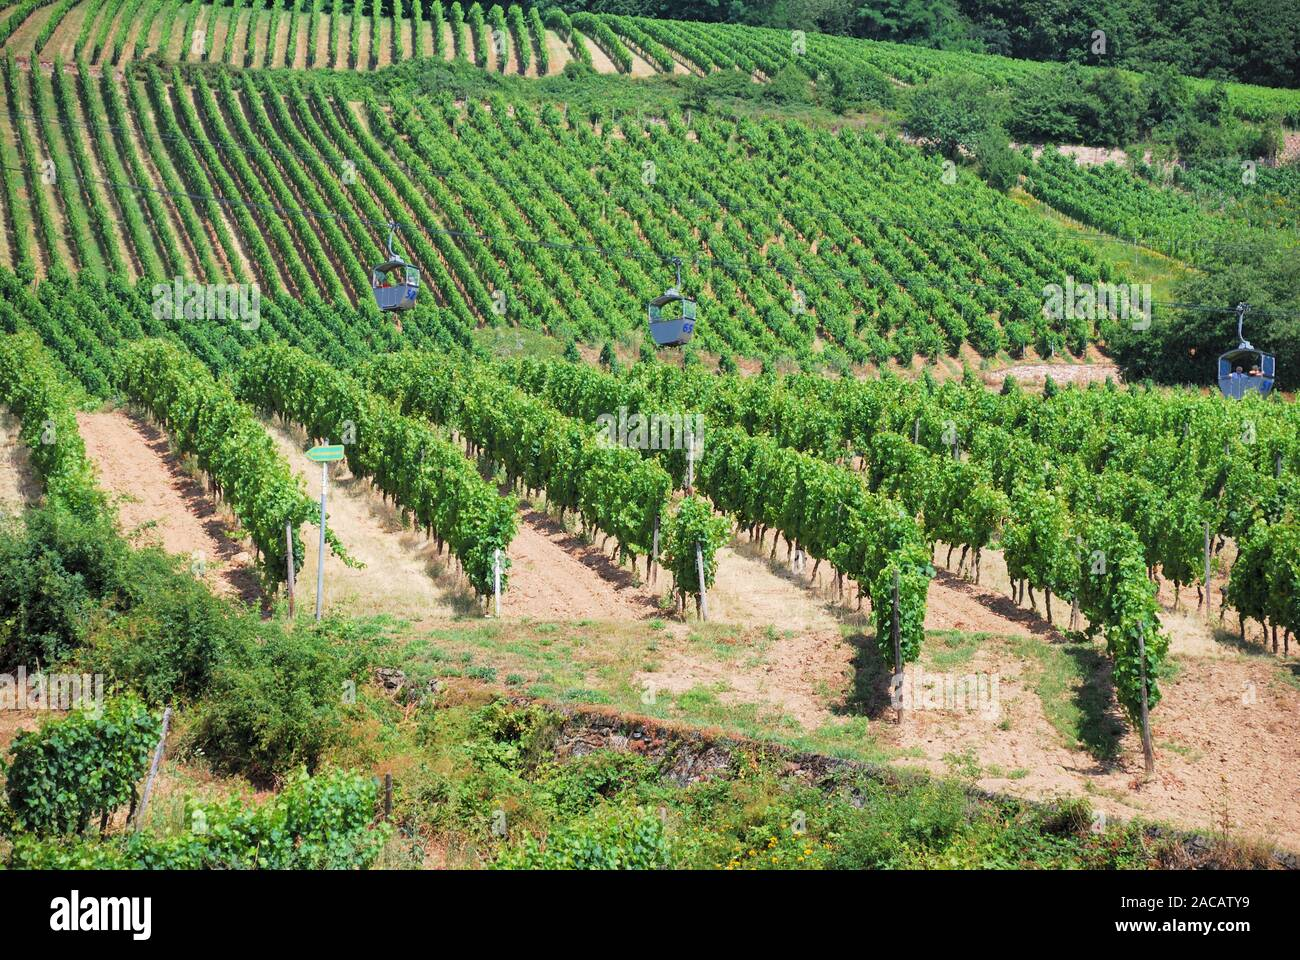 Grapevines in a vine and cable car Stock Photo